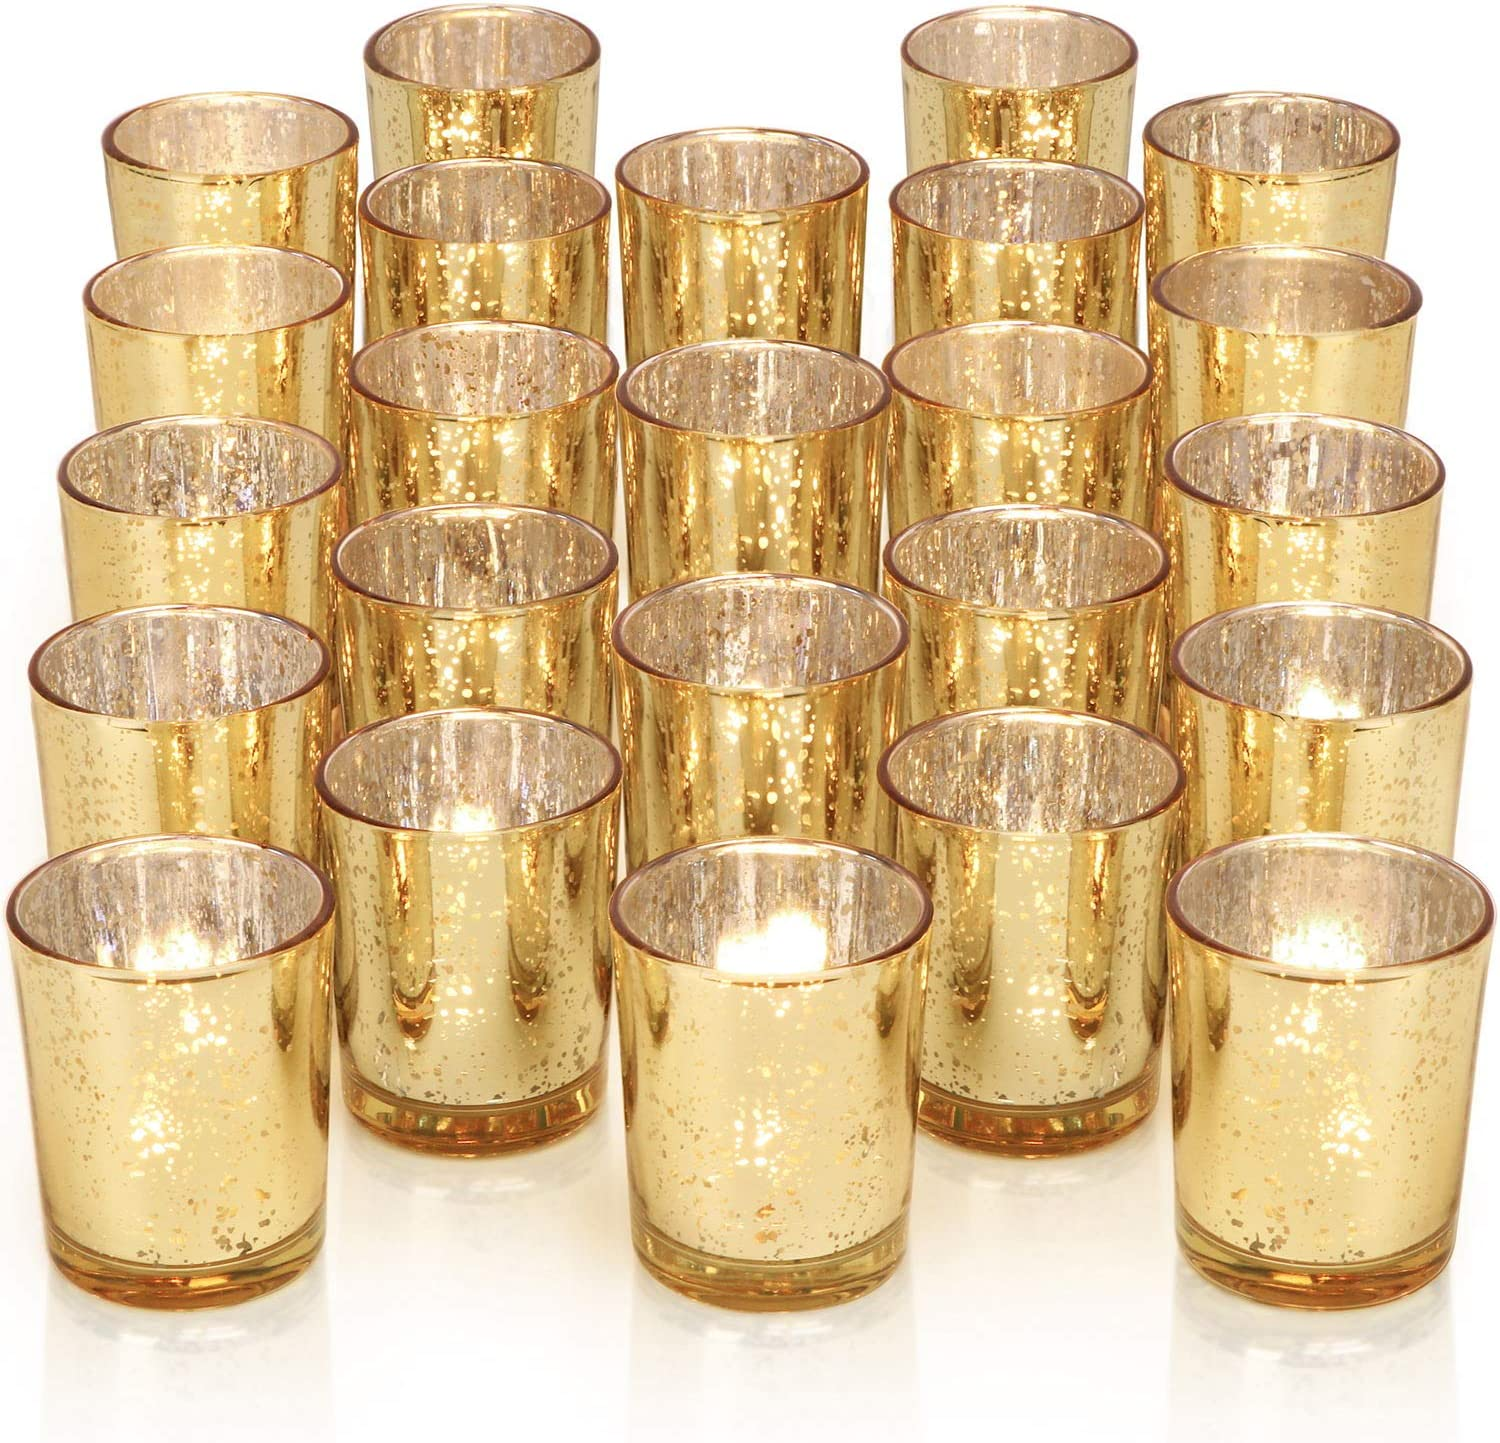 DARJEN 24Pcs Gold Votive Candle Holders for Table - Mercury Glass Votives Gold Candle Holder - Tealight Candle Holder for Wedding Centerpieces & Party Decorations